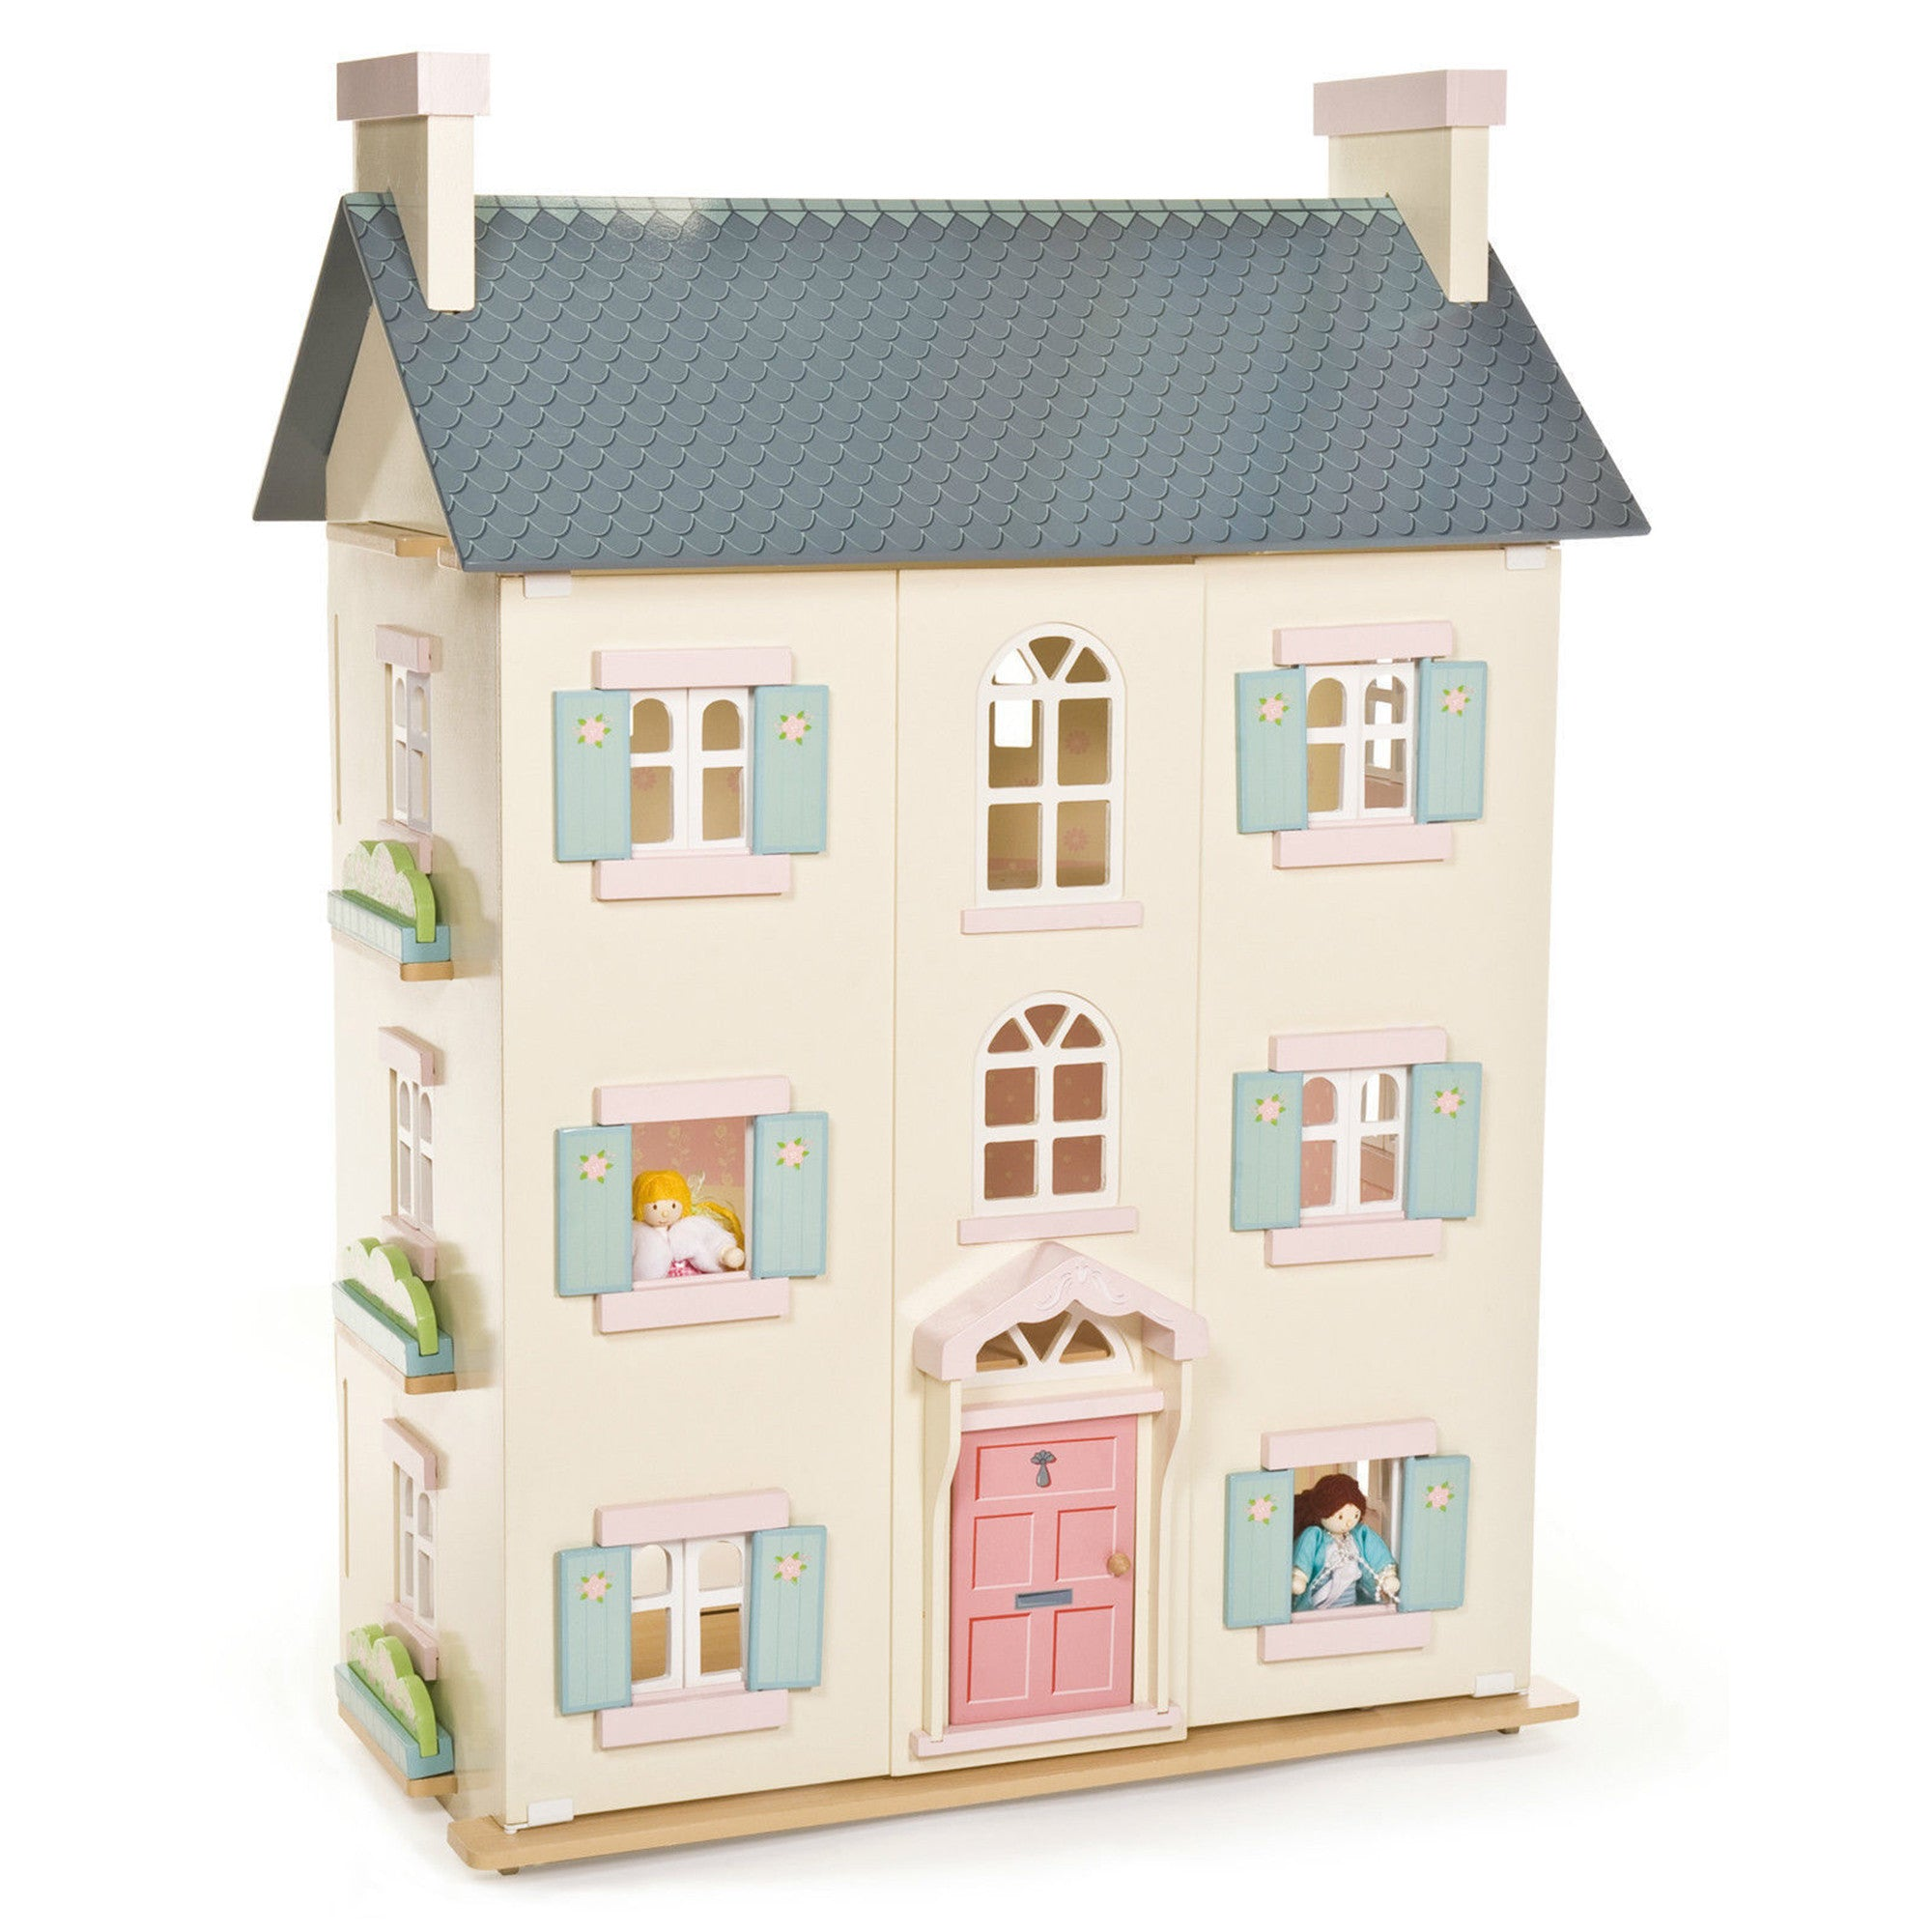 Le Toy Van Cherry Tree Hall Doll's House   - Le Toy Van - Little Earth Nest - 1